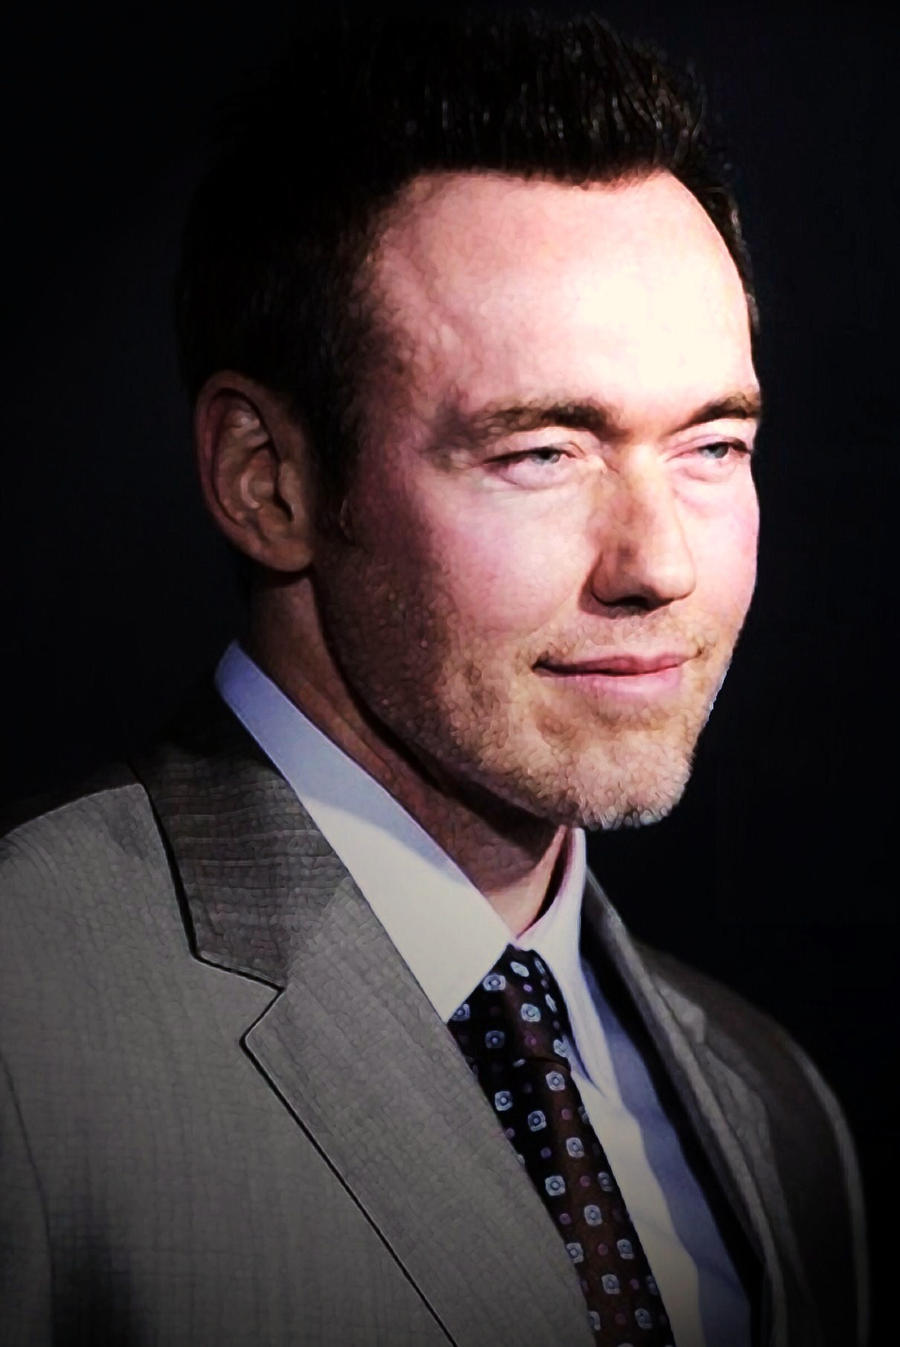 kevin durand frenchkevin durand elon musk, kevin durand height, kevin durand imdb, kevin durand and sandra cho, kevin durand death stranding, kevin durand twitter, kevin durand 2016, kevin durant injury update, kevin durand vikings, kevin durand (i), kevin durand gif, kevin durand french, kevin durand фильмы, kevin durand instagram, kevin durand interview, kevin durand lost, kevin durand speaking french, kevin durand butterfly effect, kevin durand actor, kevin durand wolverine